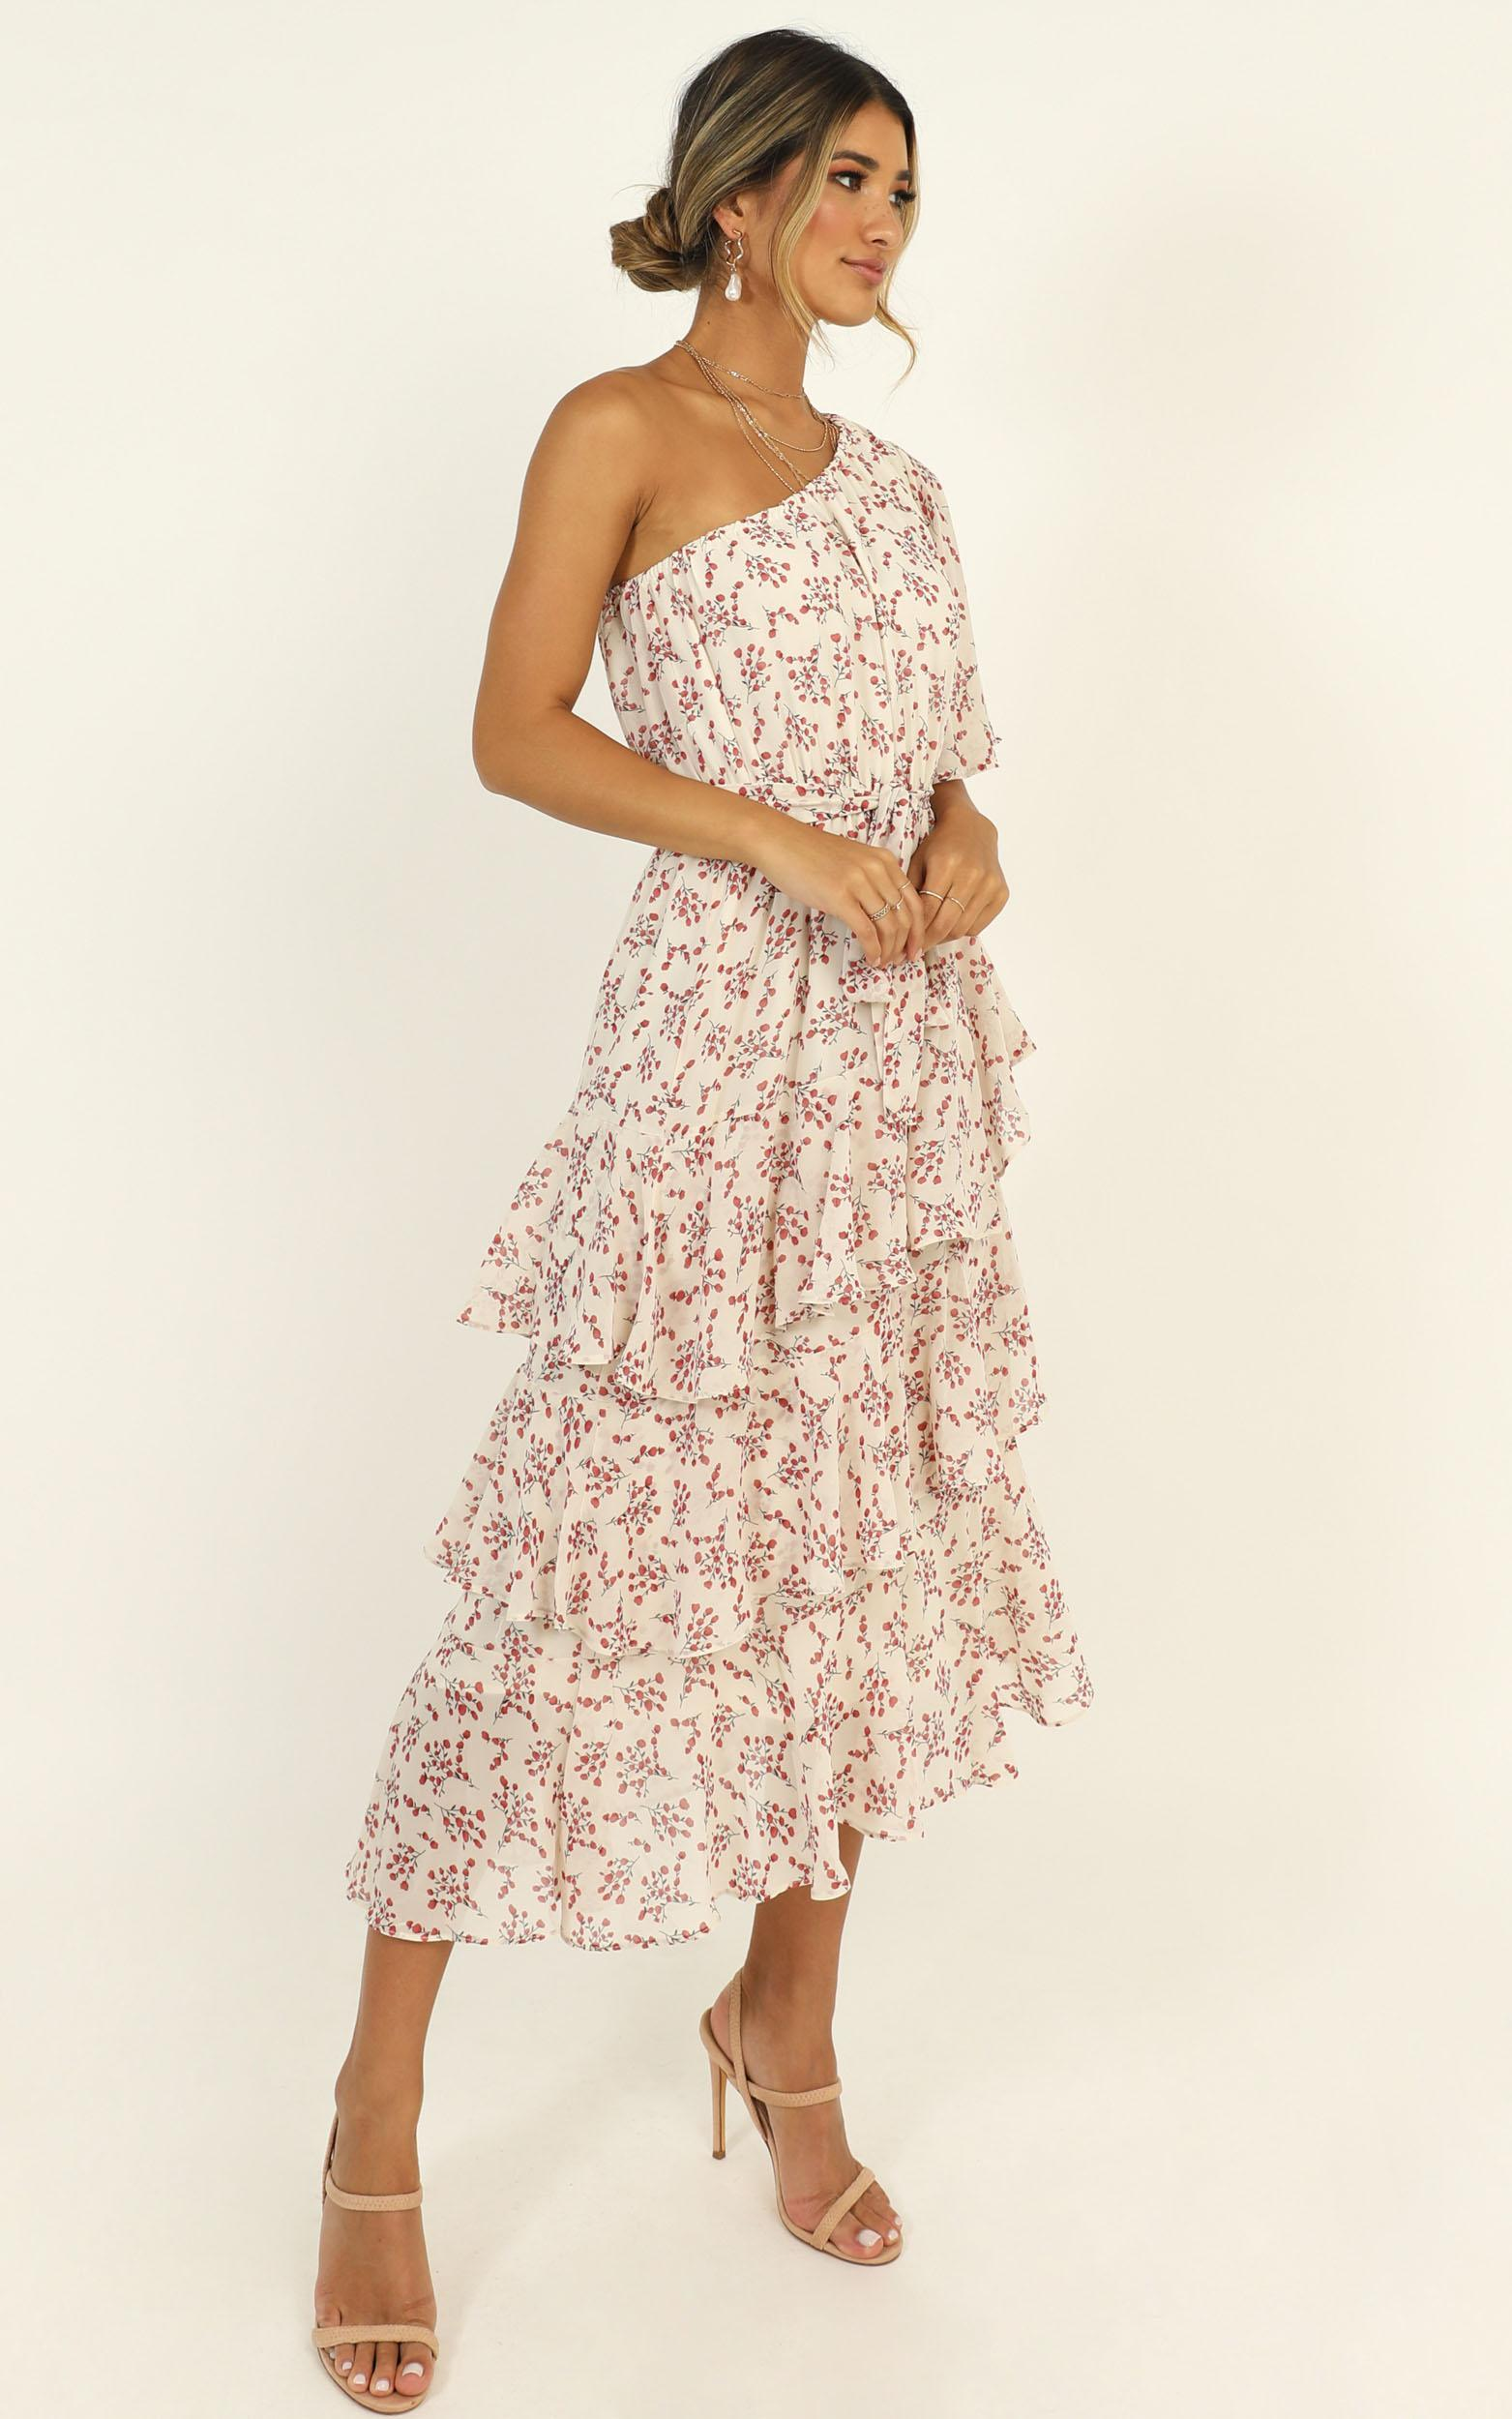 Taking Time Dress In cream floral - 14 (XL), Cream, hi-res image number null